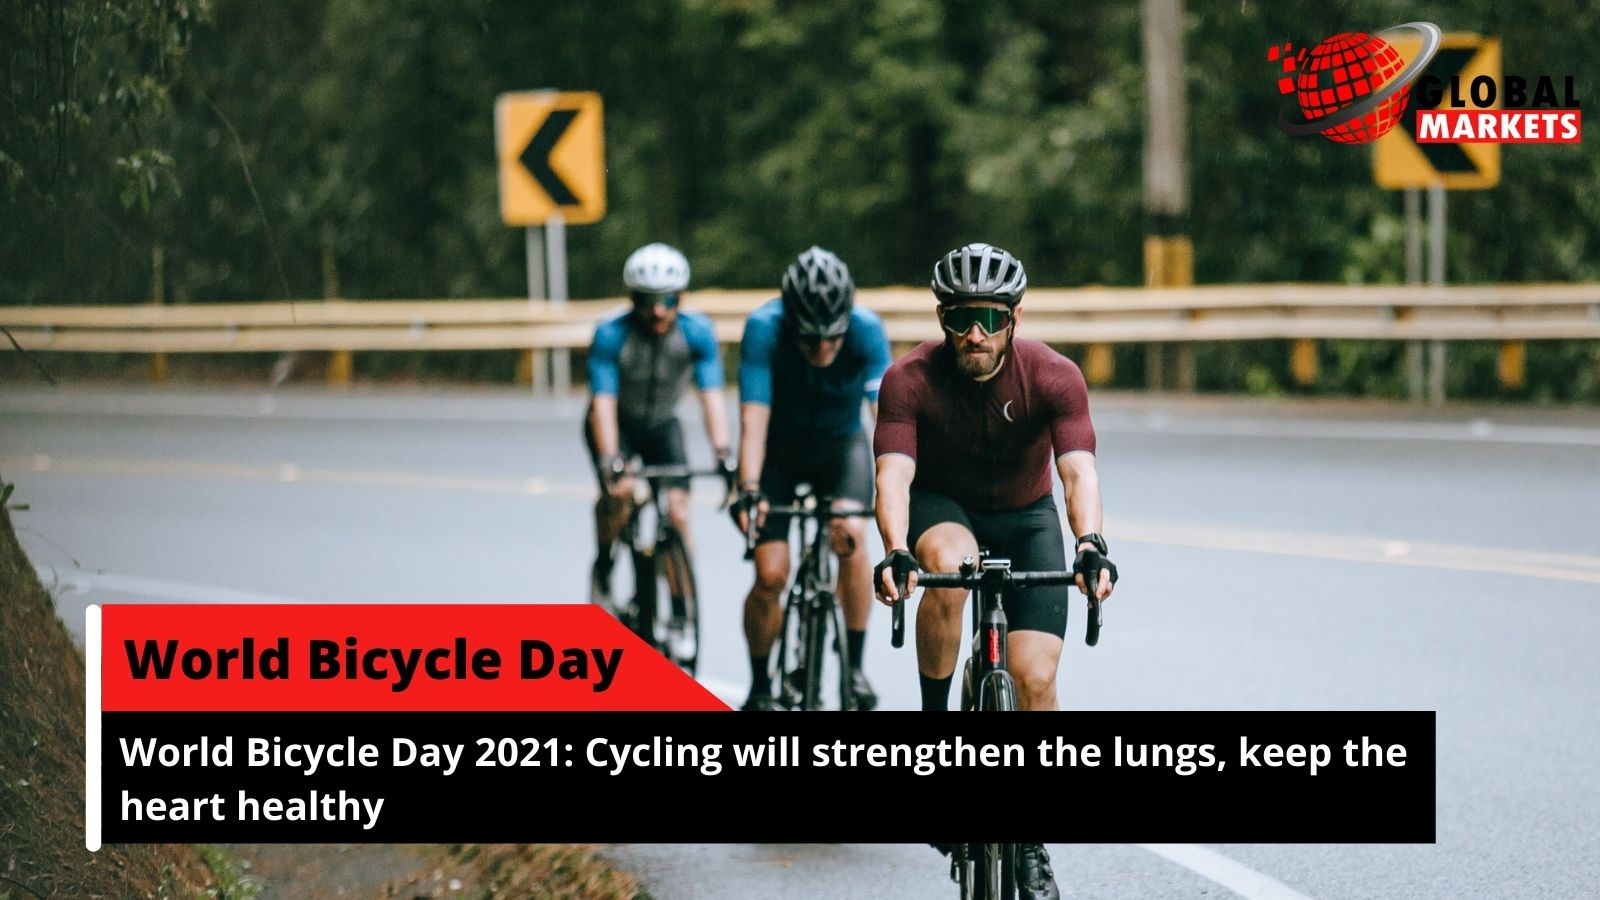 World Bicycle Day 2021: Cycling will strengthen the lungs, keep the heart healthy